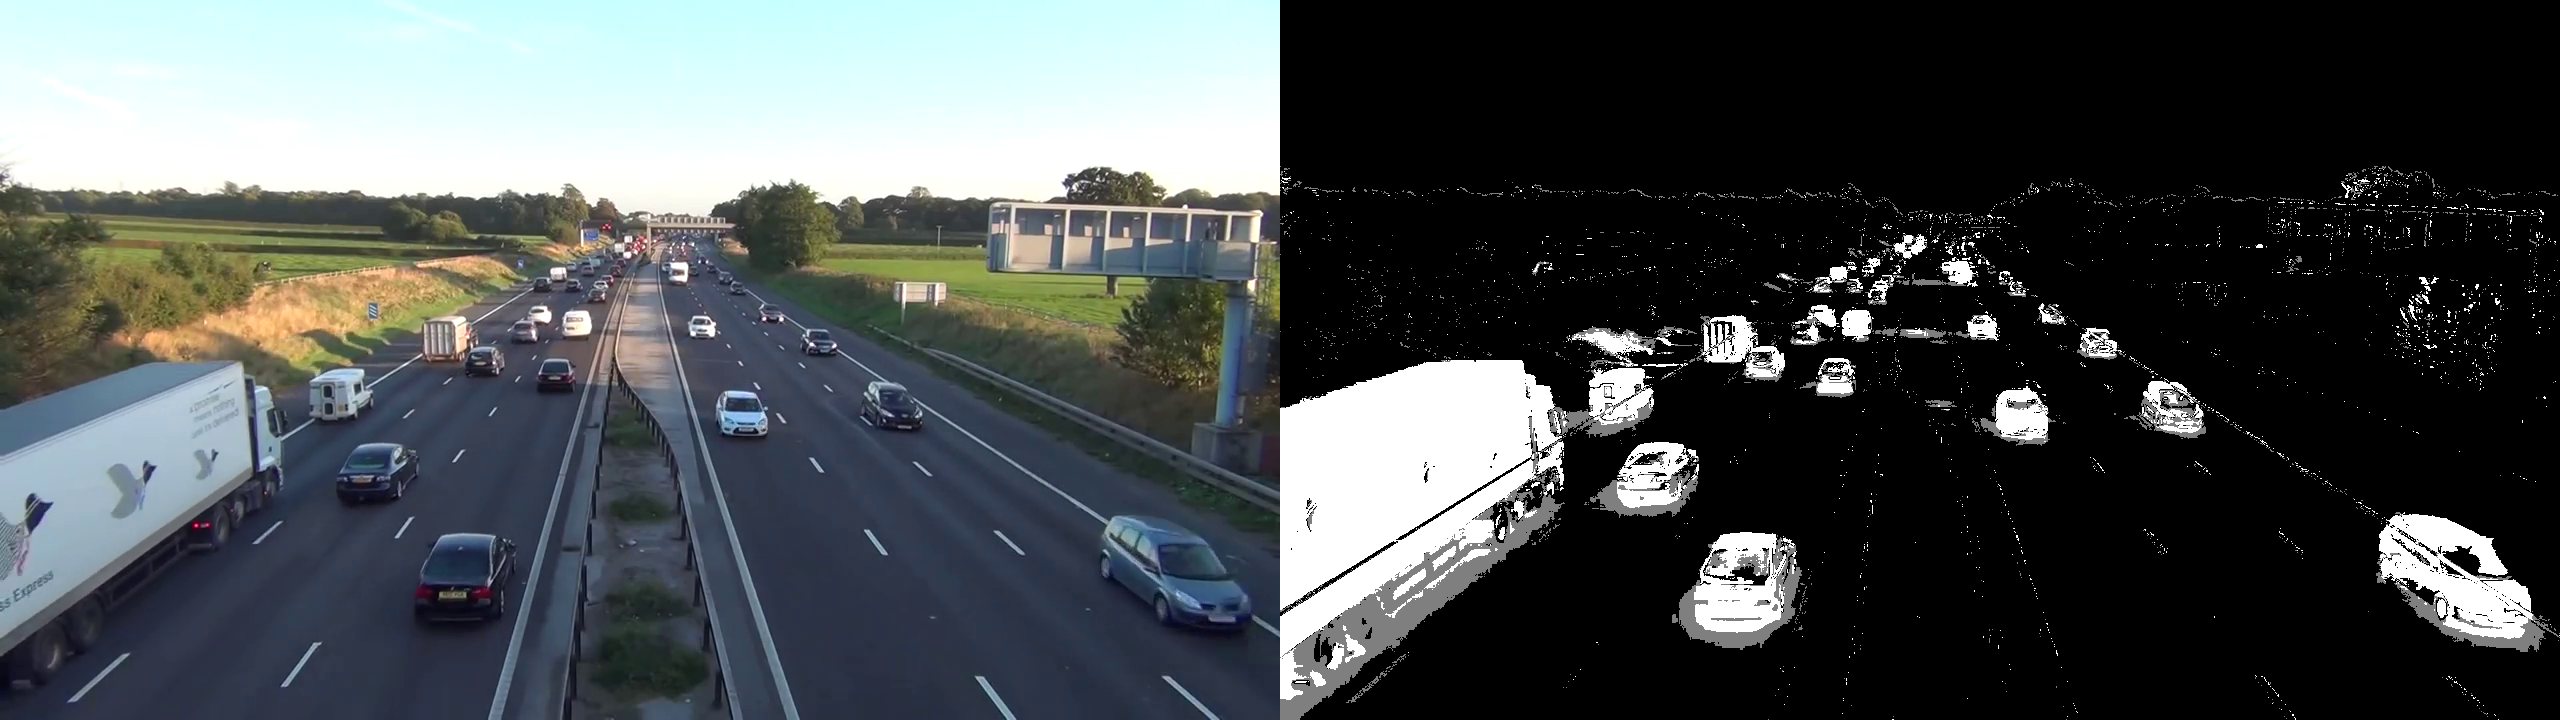 Tutorial: Making Road Traffic Counting App based on Computer Vision